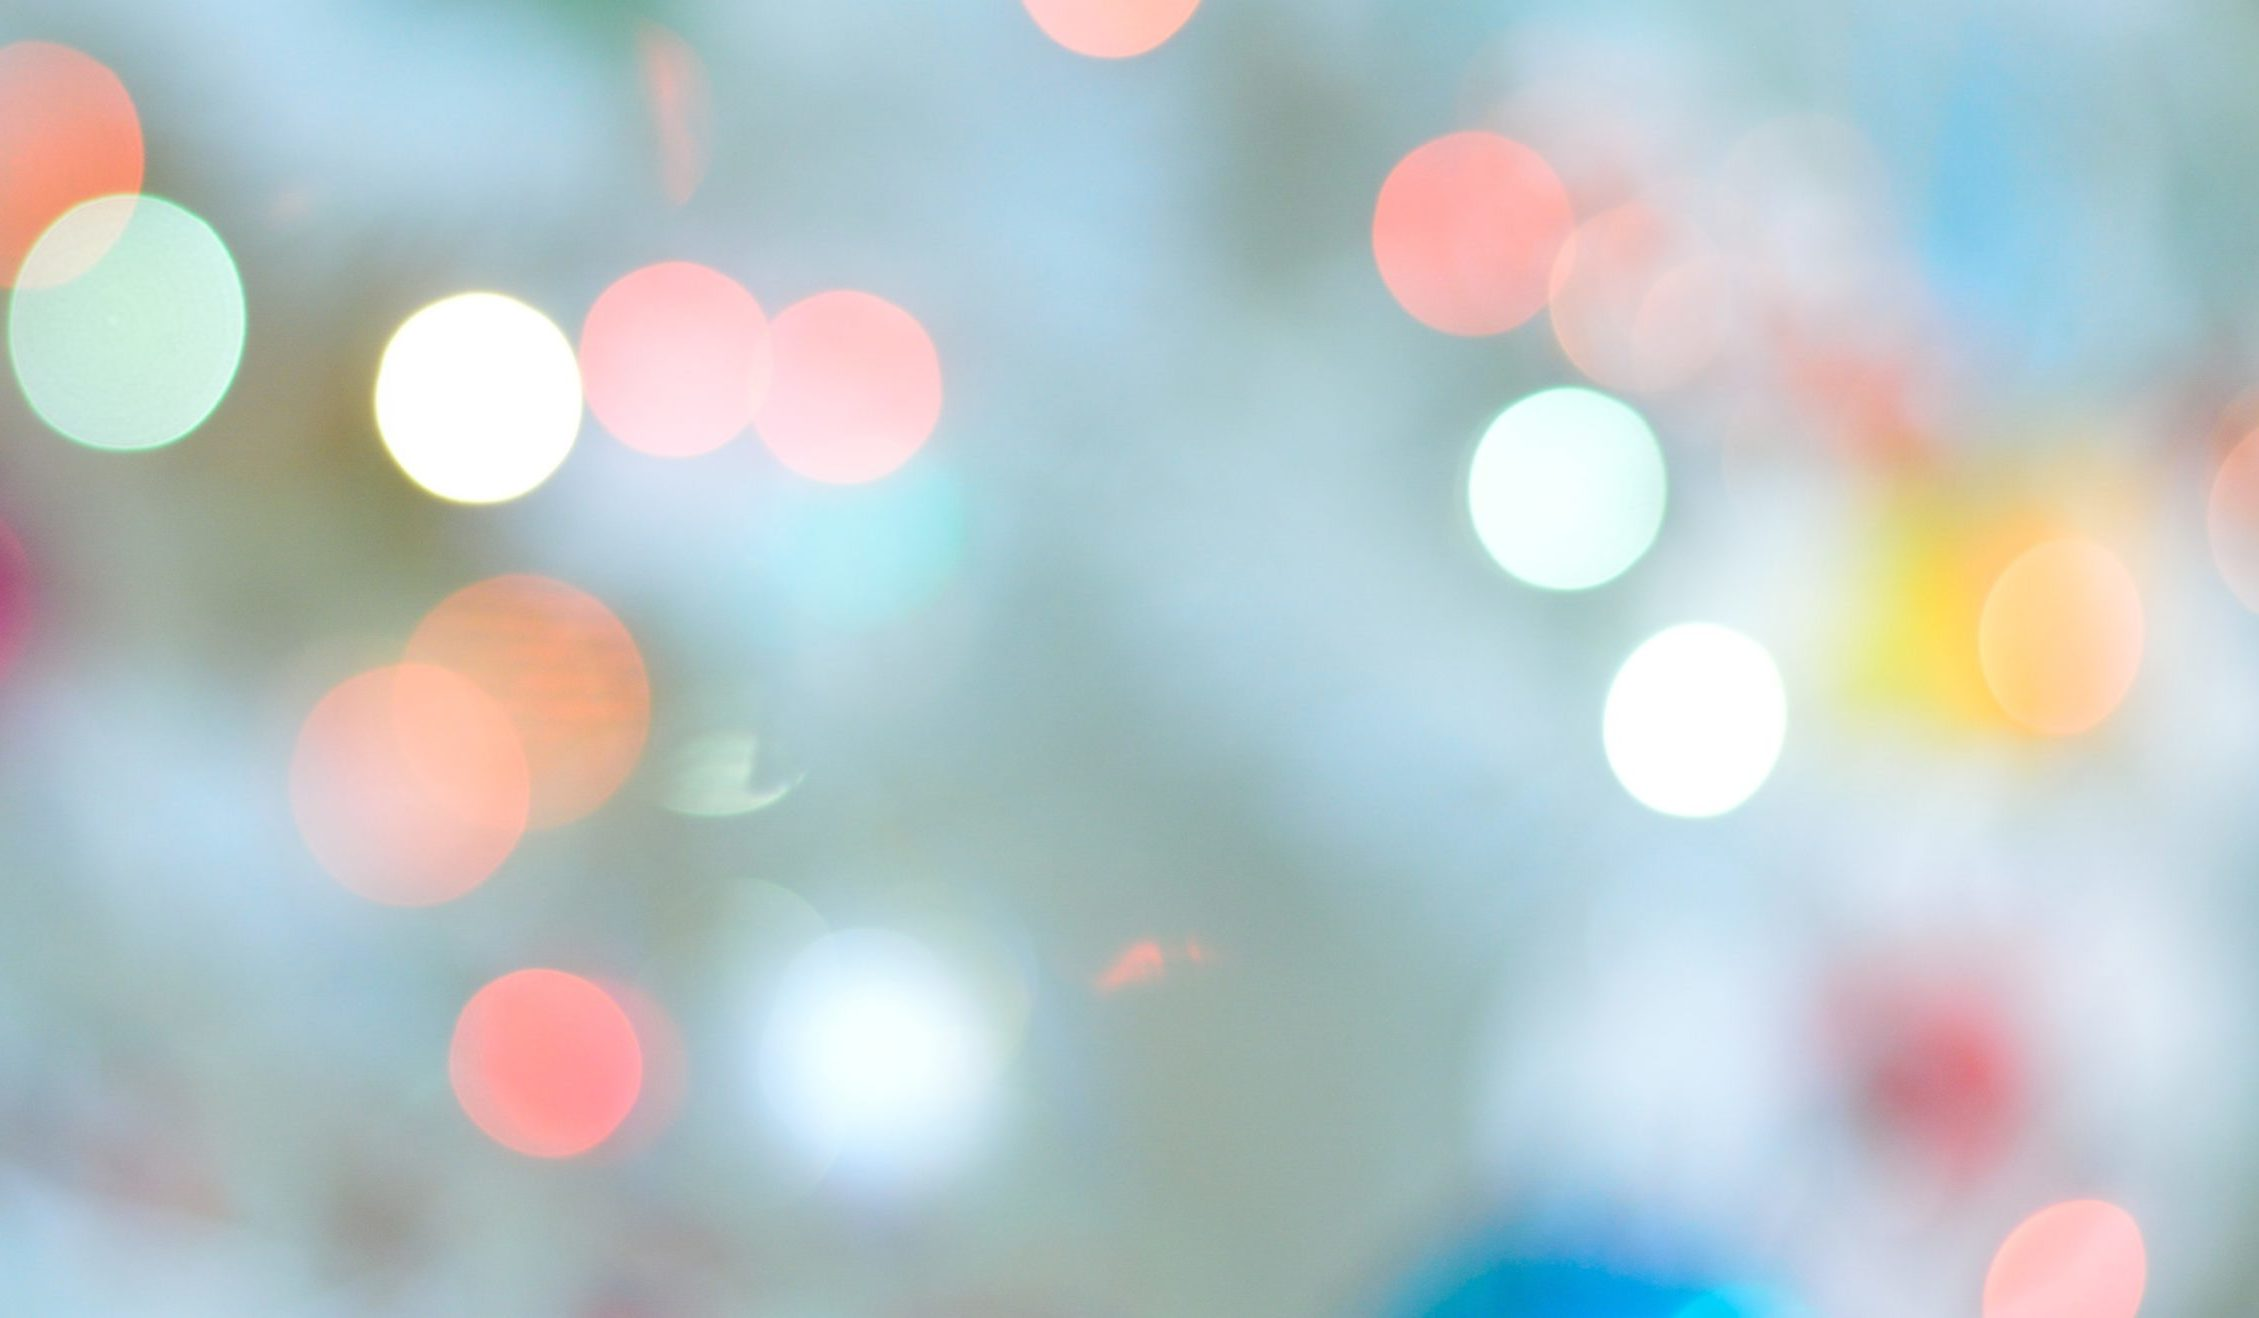 defocused-image-of-lights-255379